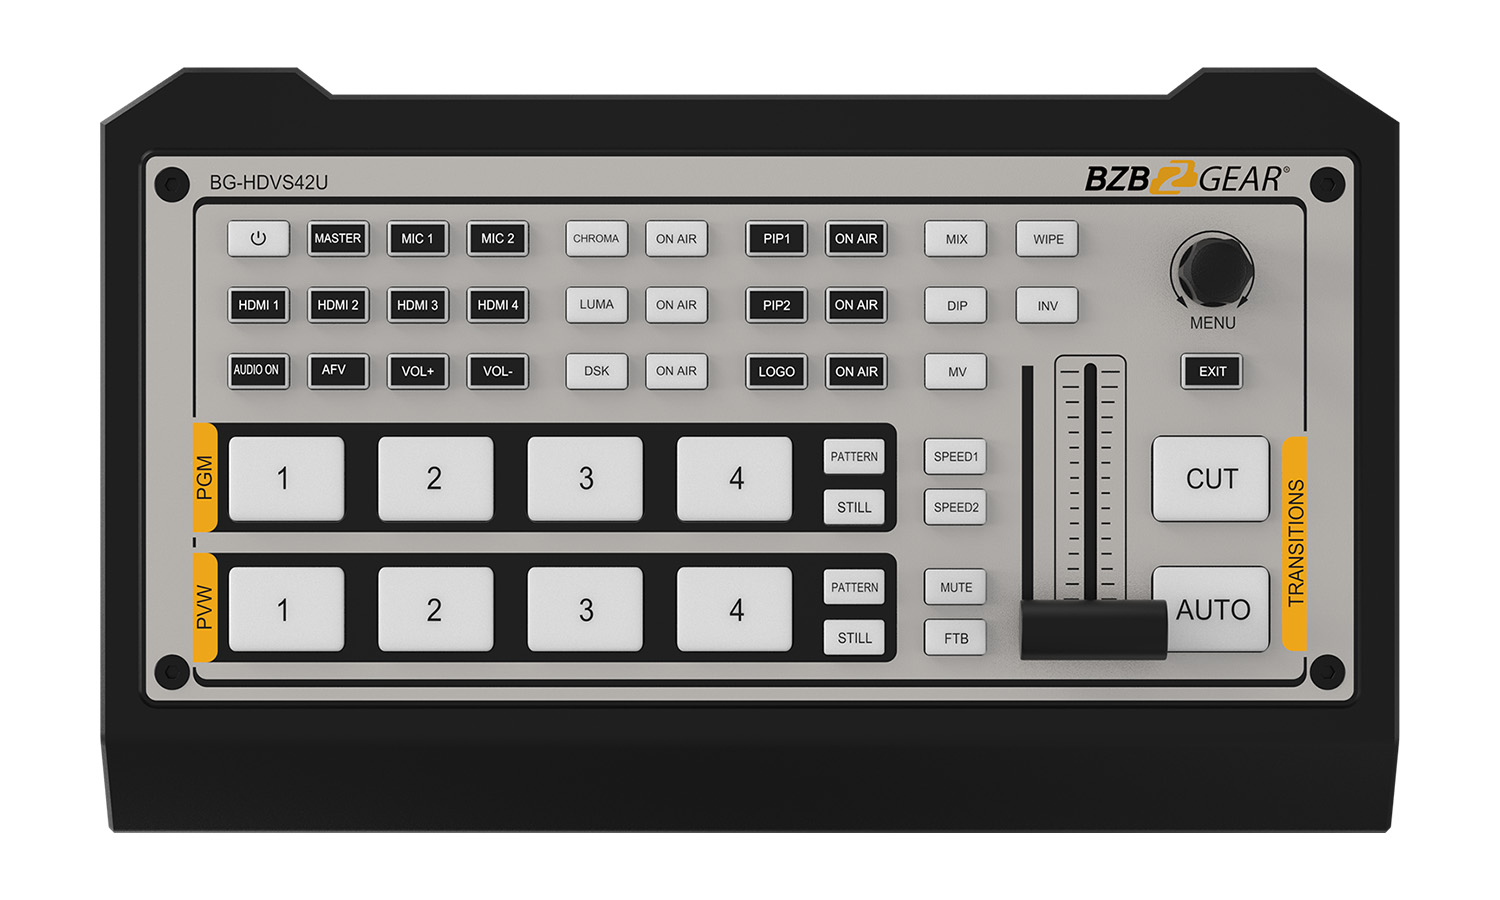 BZBGEAR BG-HDVS42U 4-Channel HDMI Live Streaming Video/Audio Mixer and Switcher